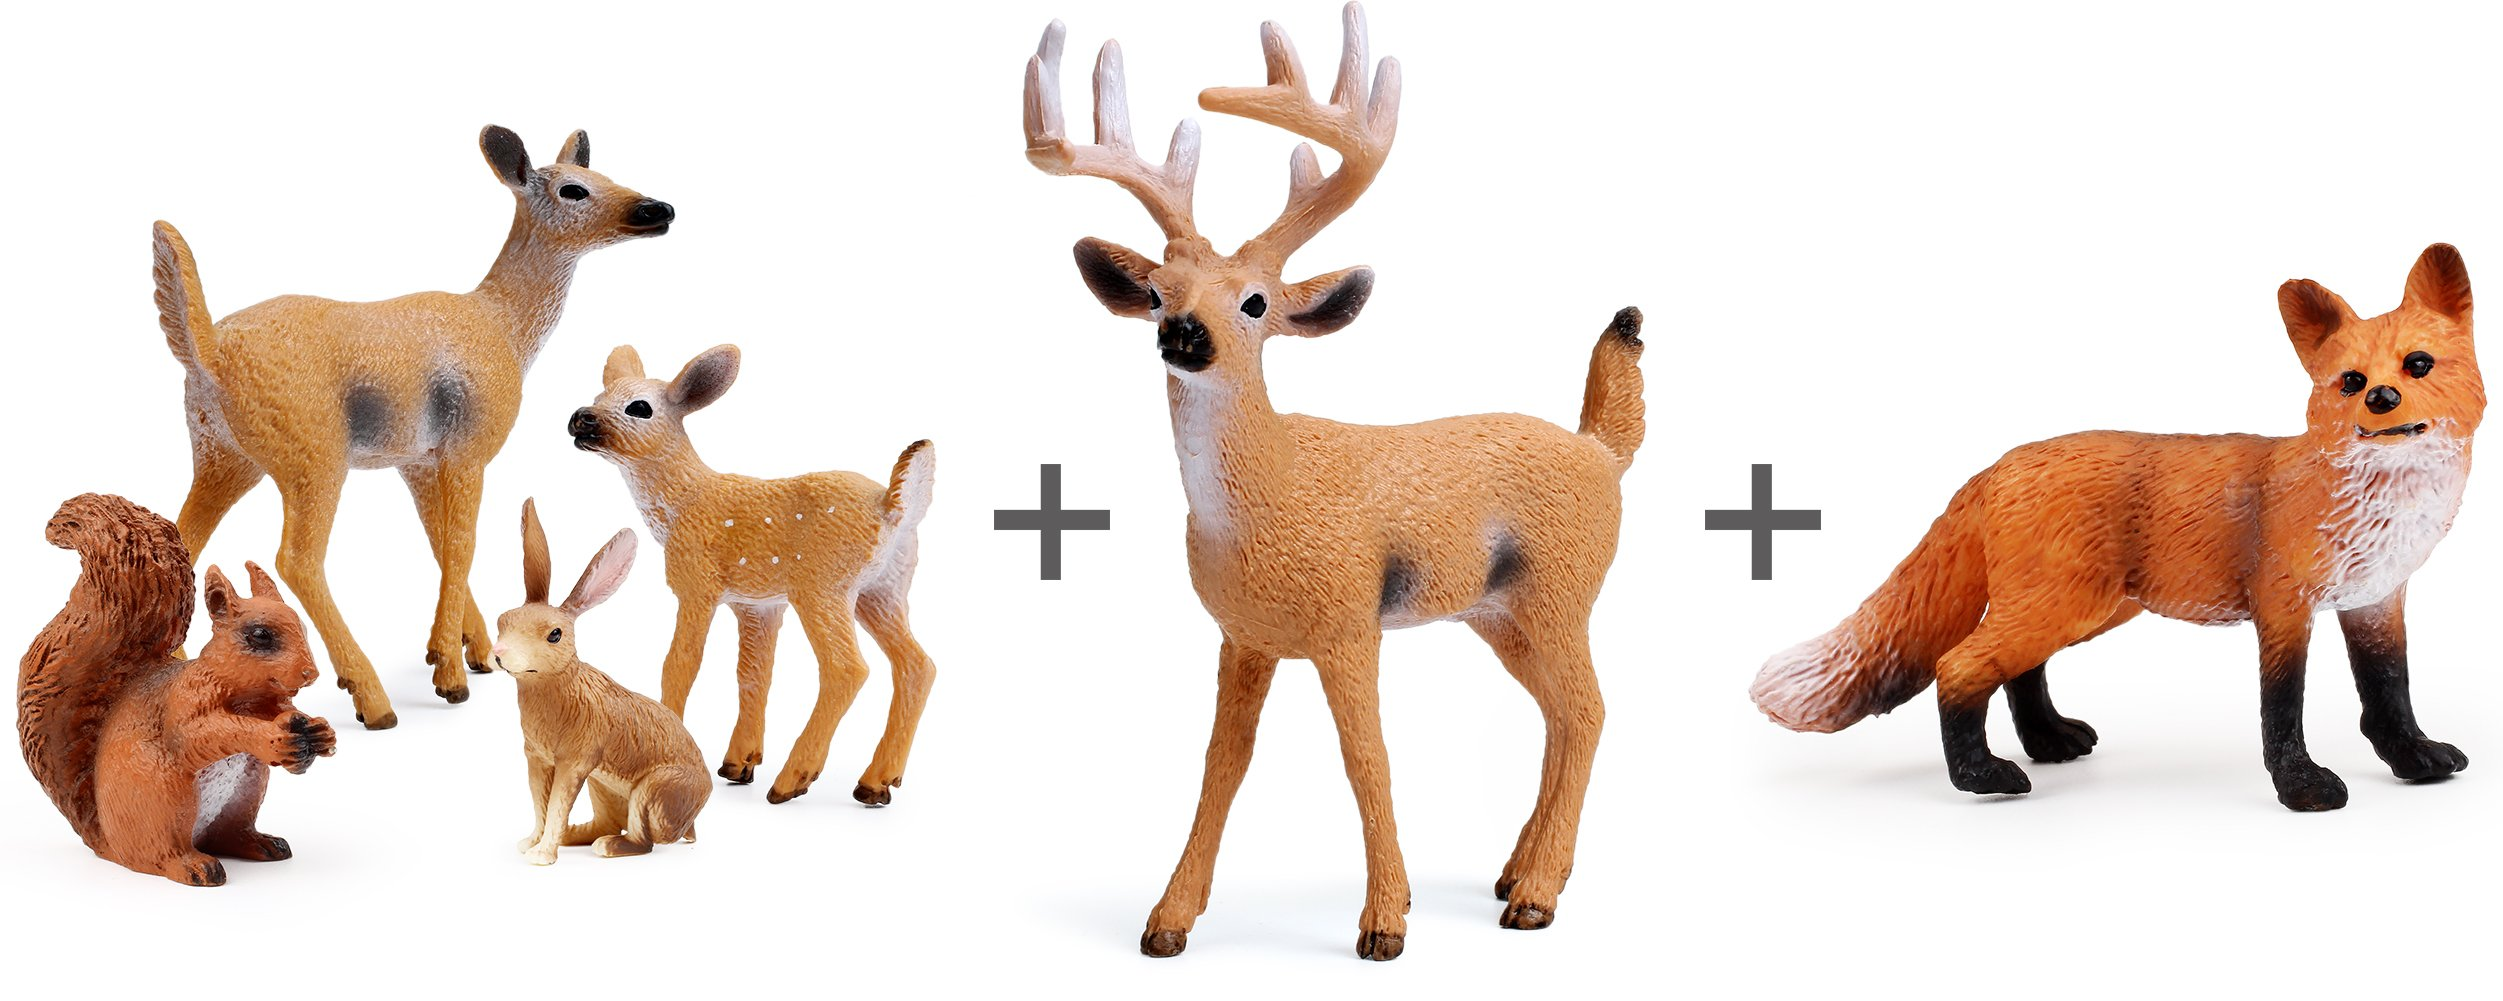 Miniature Deer Family Toy Figurines with Forest Animal Babies Set, Includes a Buck, Doe, Fawn, Rabbit, Squirrel and Fox